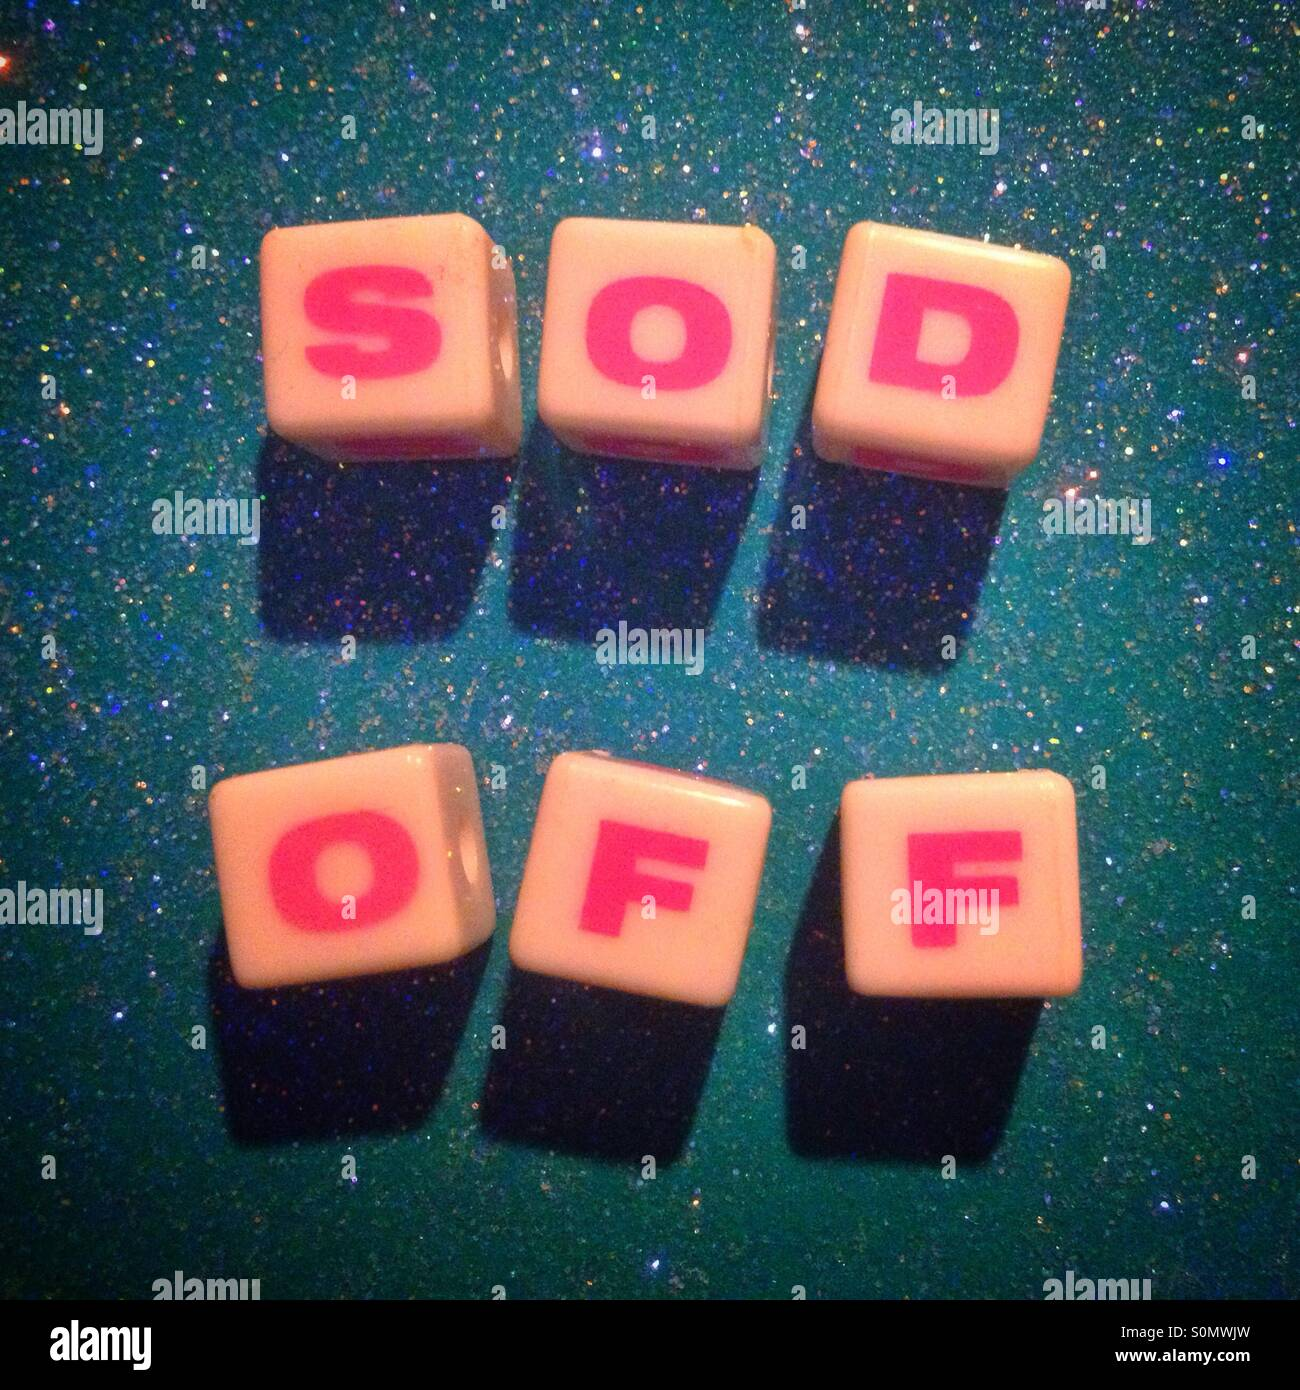 Sod Off spelt out using a child's plastic letter blocks - Stock Image